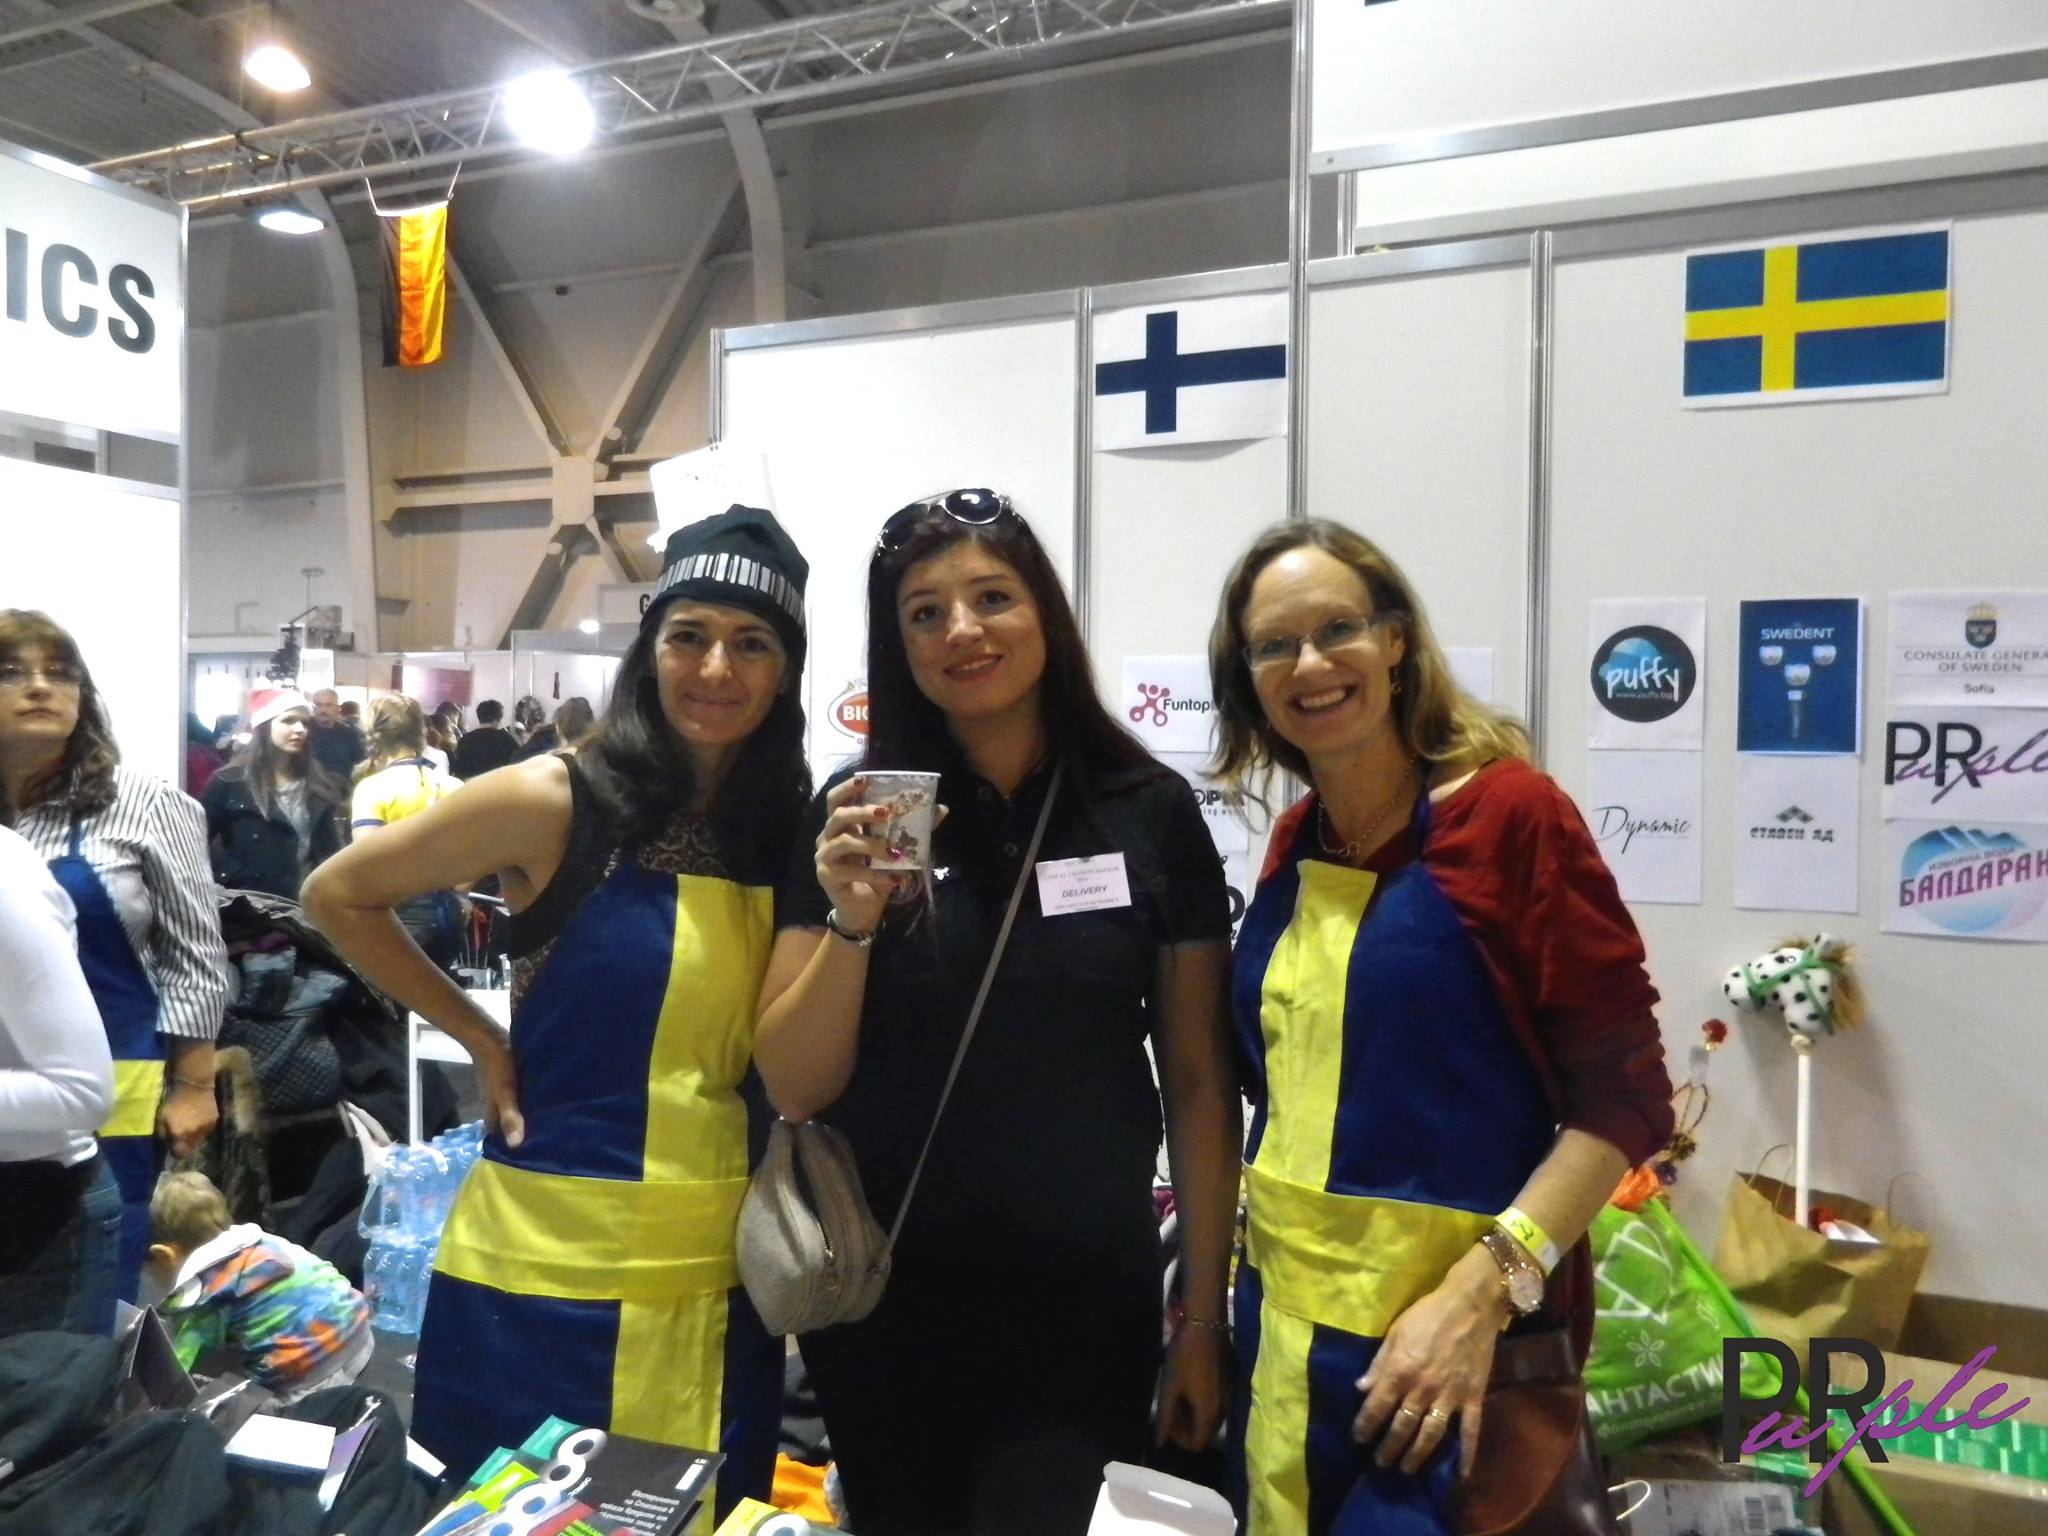 7-22-IWC-Charity-Bazaar-Christmas-The-world-comes-to-you-IEC-Sofia-Purple-PR-campaign